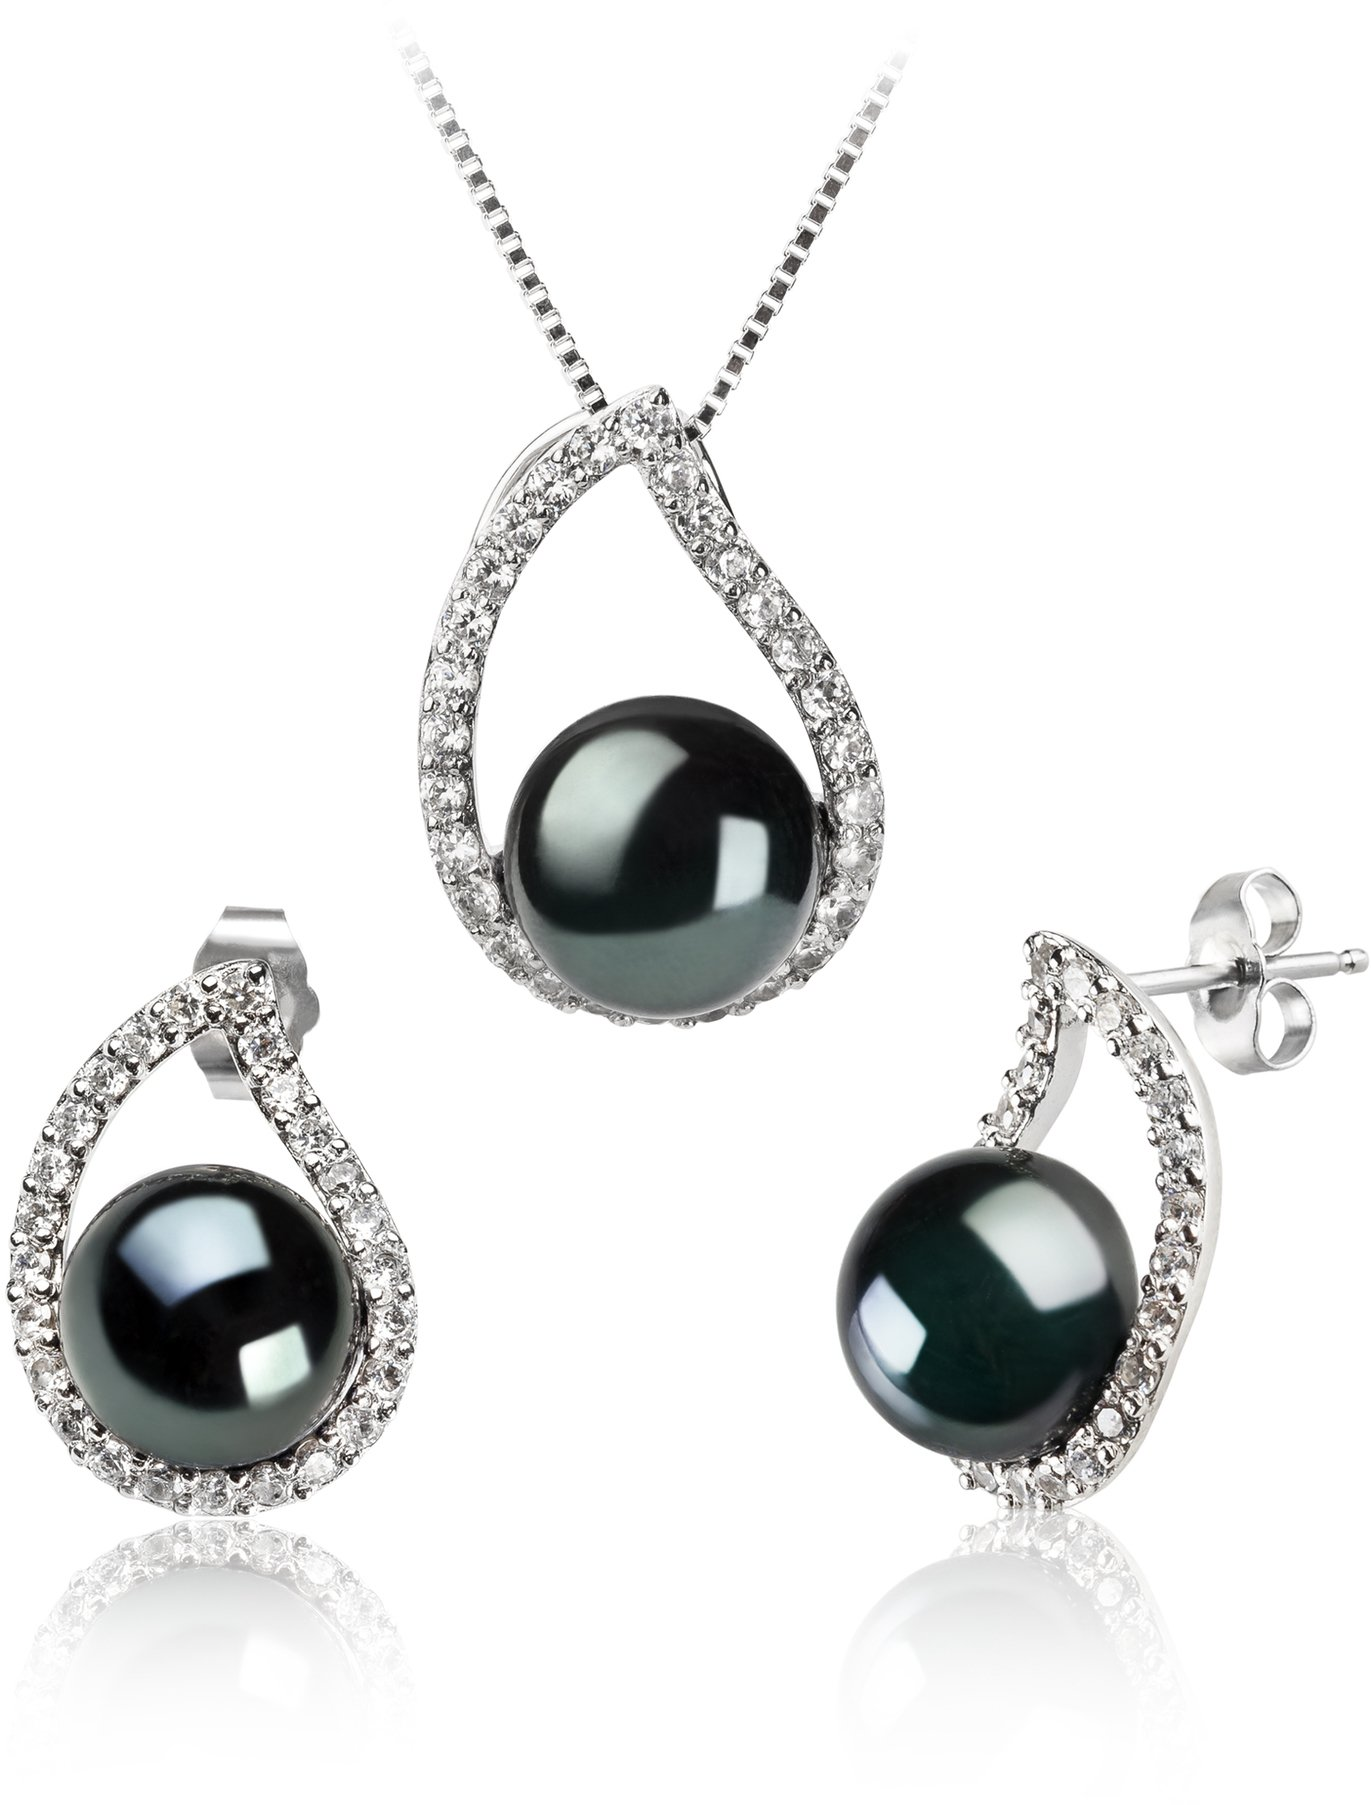 PearlsOnly - Isabella Black 9-10mm AA Quality Freshwater 925 Sterling Silver Cultured Pearl Set